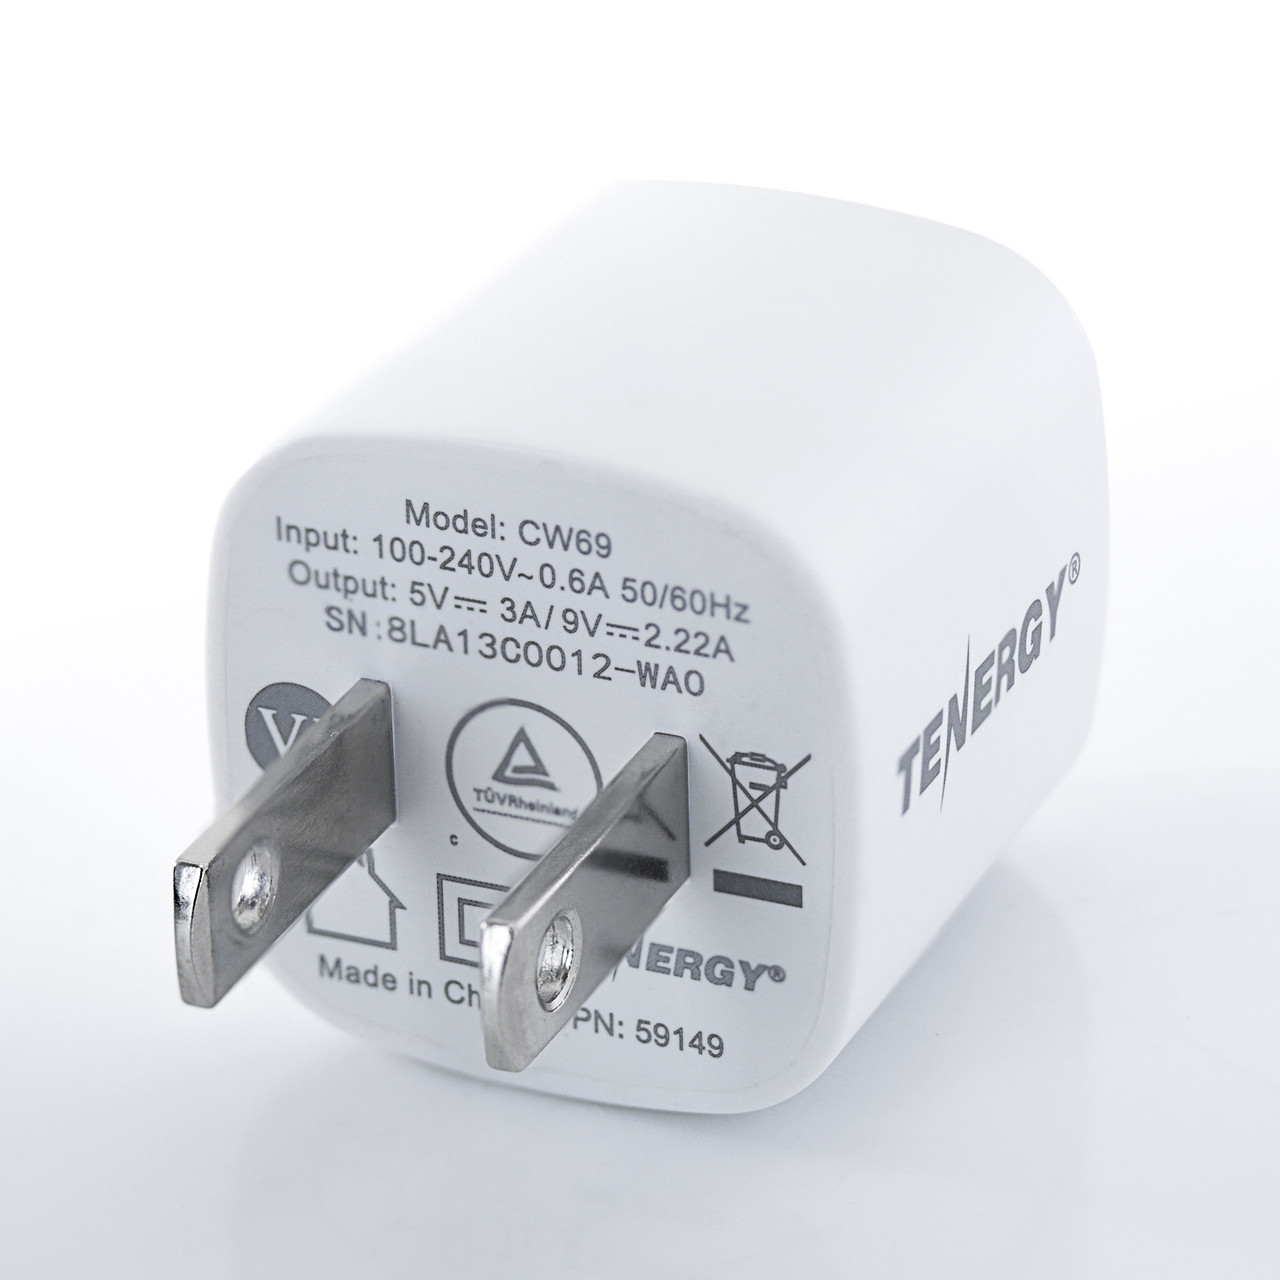 Tenergy USB-C Charger with PD 20W